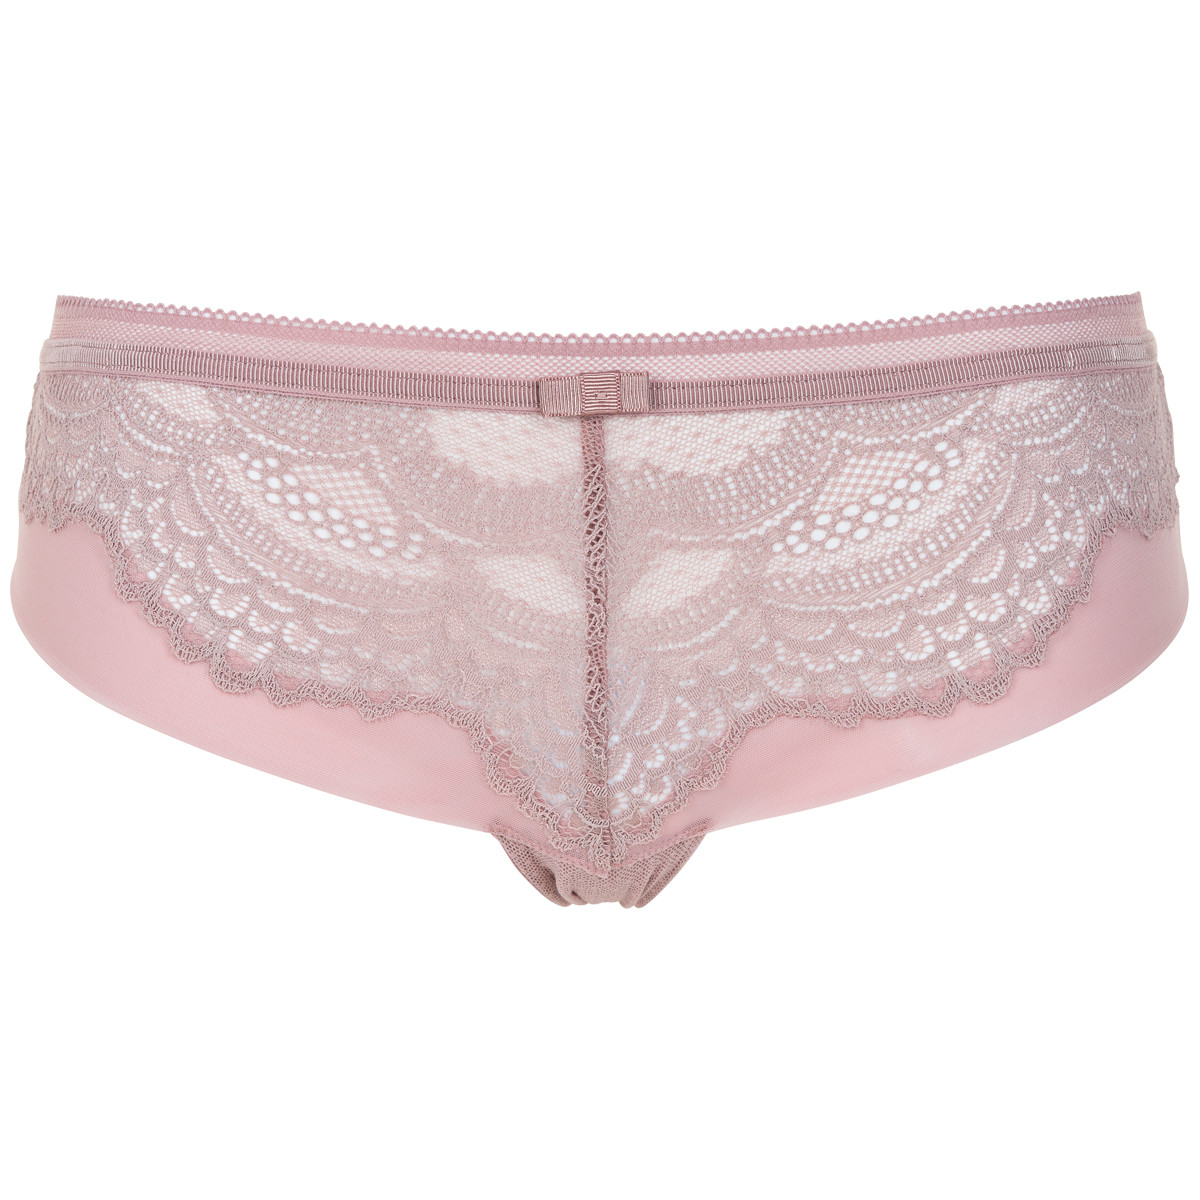 TRIUMPH BEAUTY-FULL DARLING HIPSTER 10156817 6116